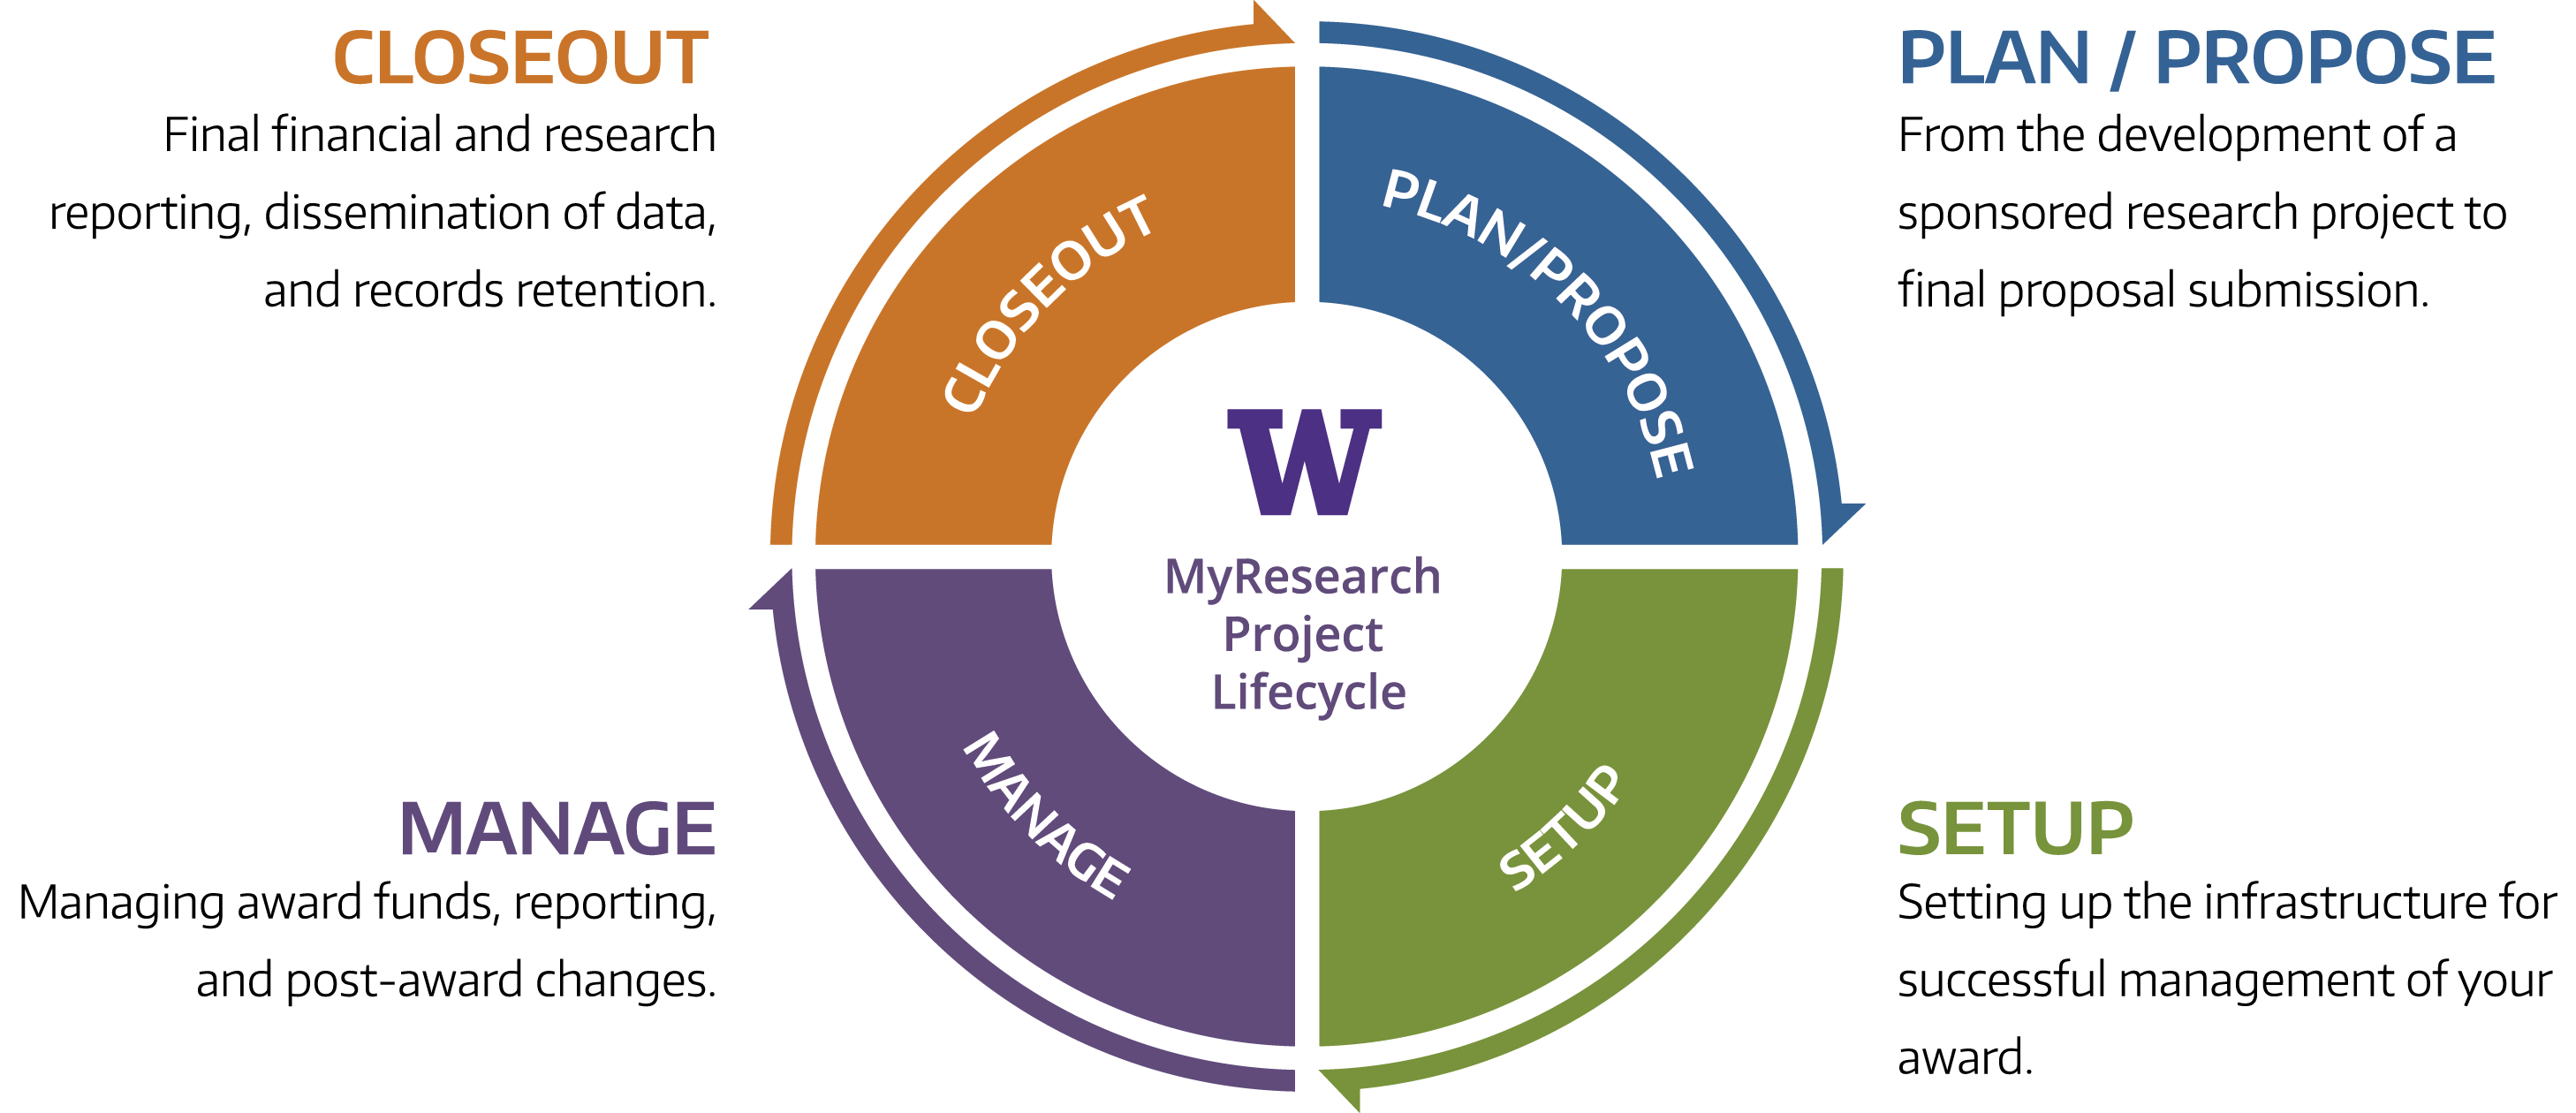 The Uw Myresearch Lifecycle With The Four Stages Plan